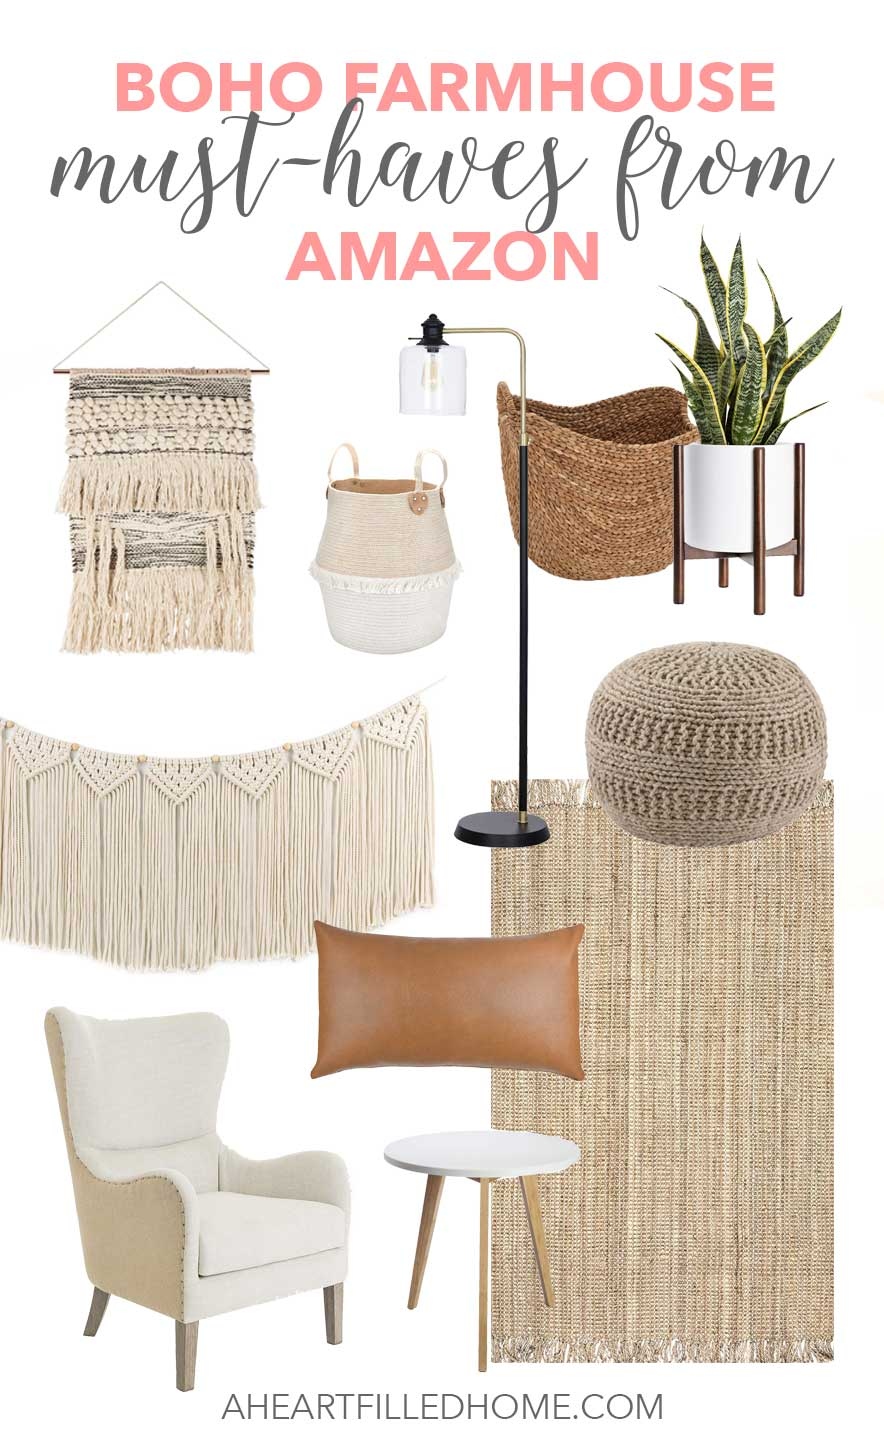 boho farmhouse must haves from Amazon!